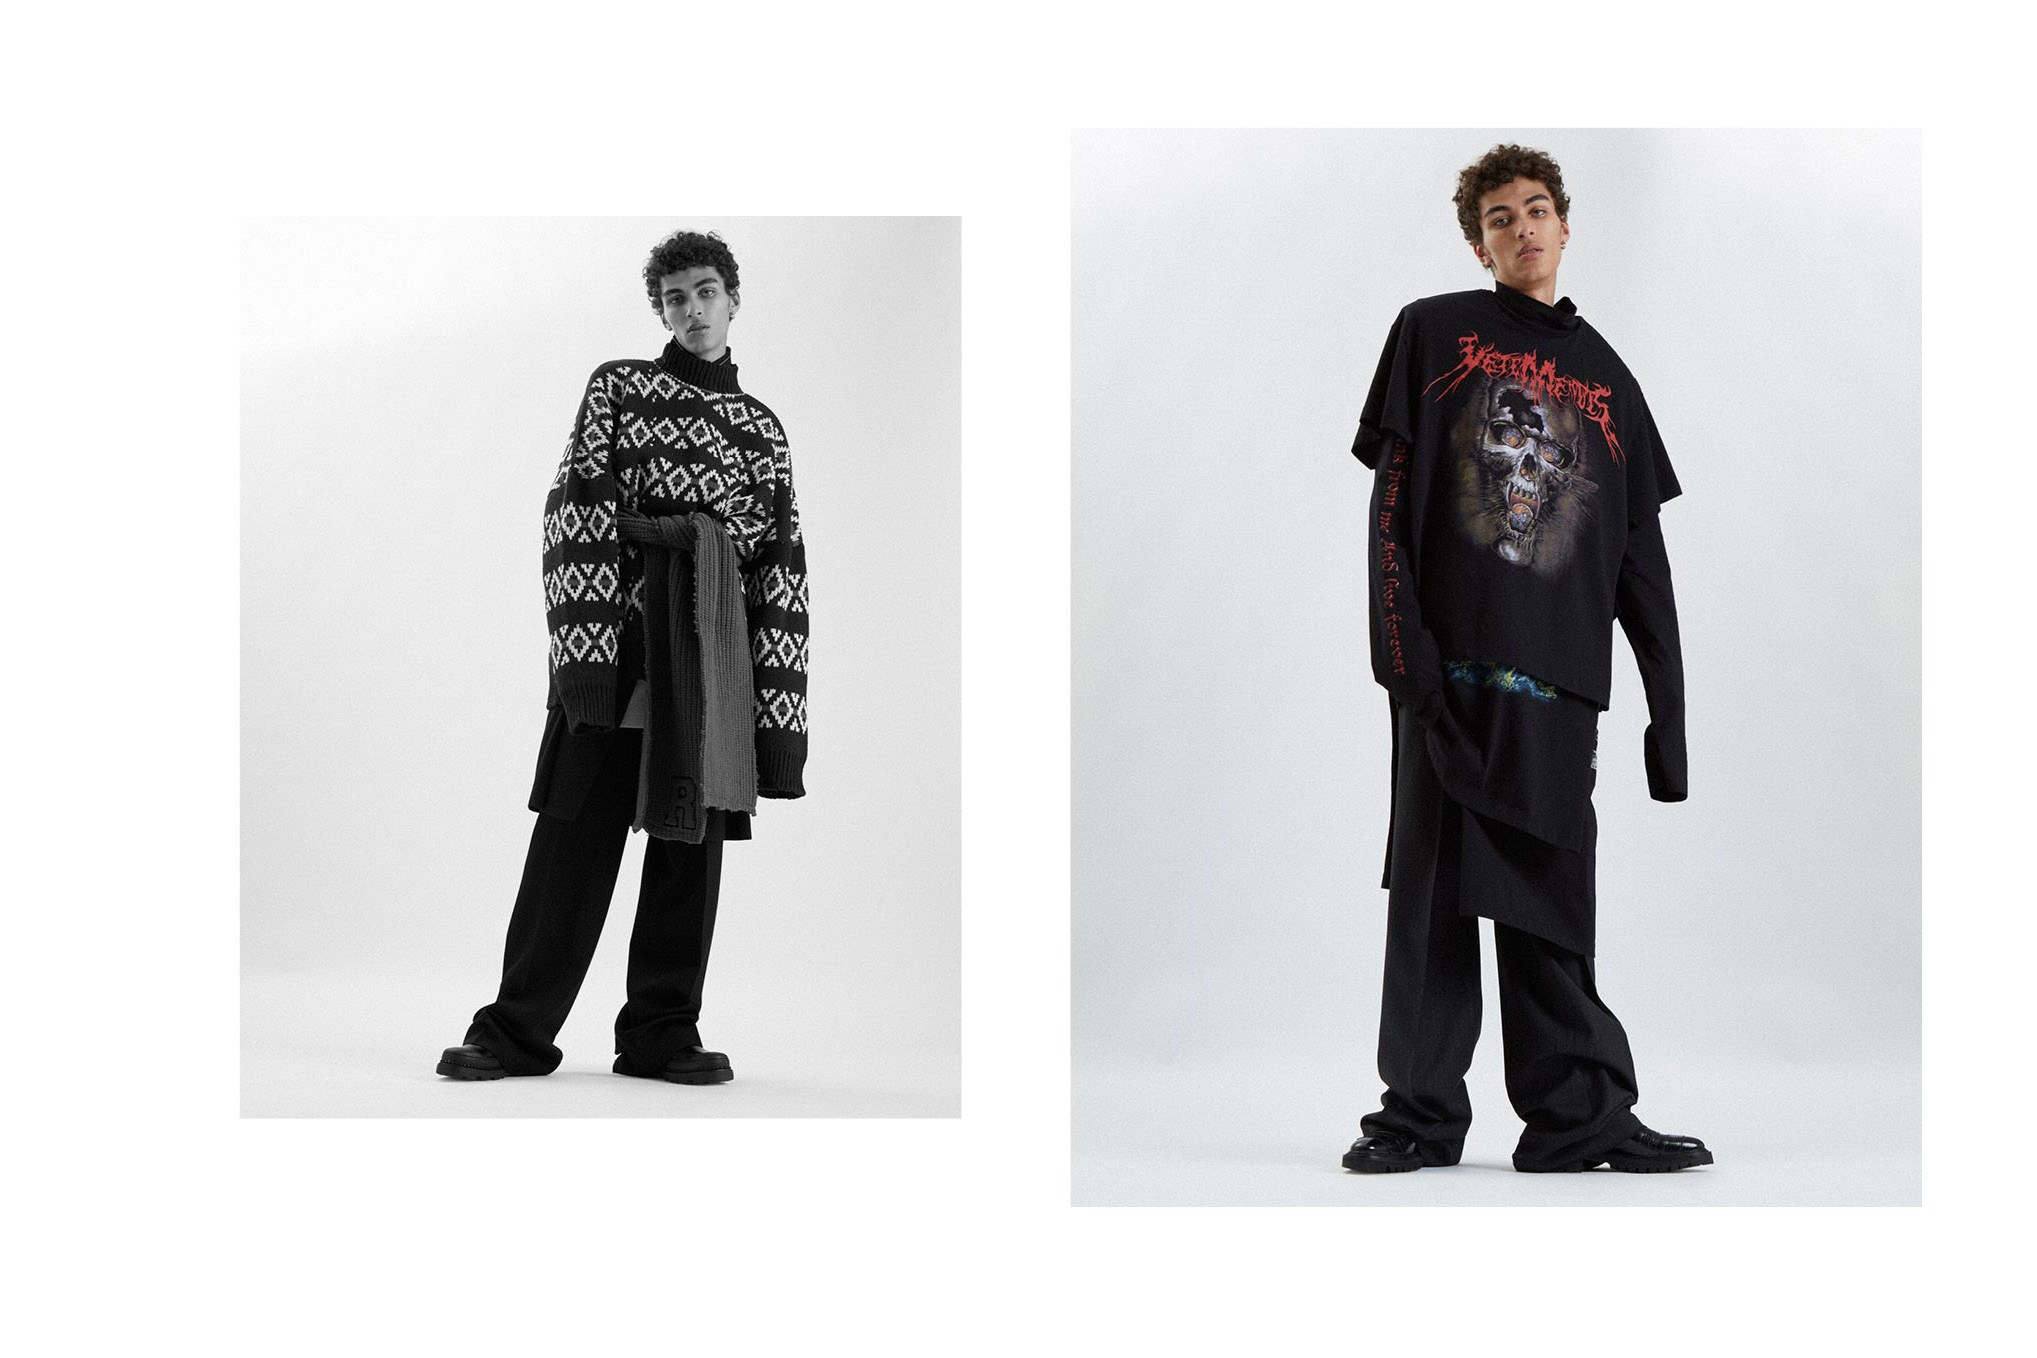 ln-cc-oversized-youth-editorial-3